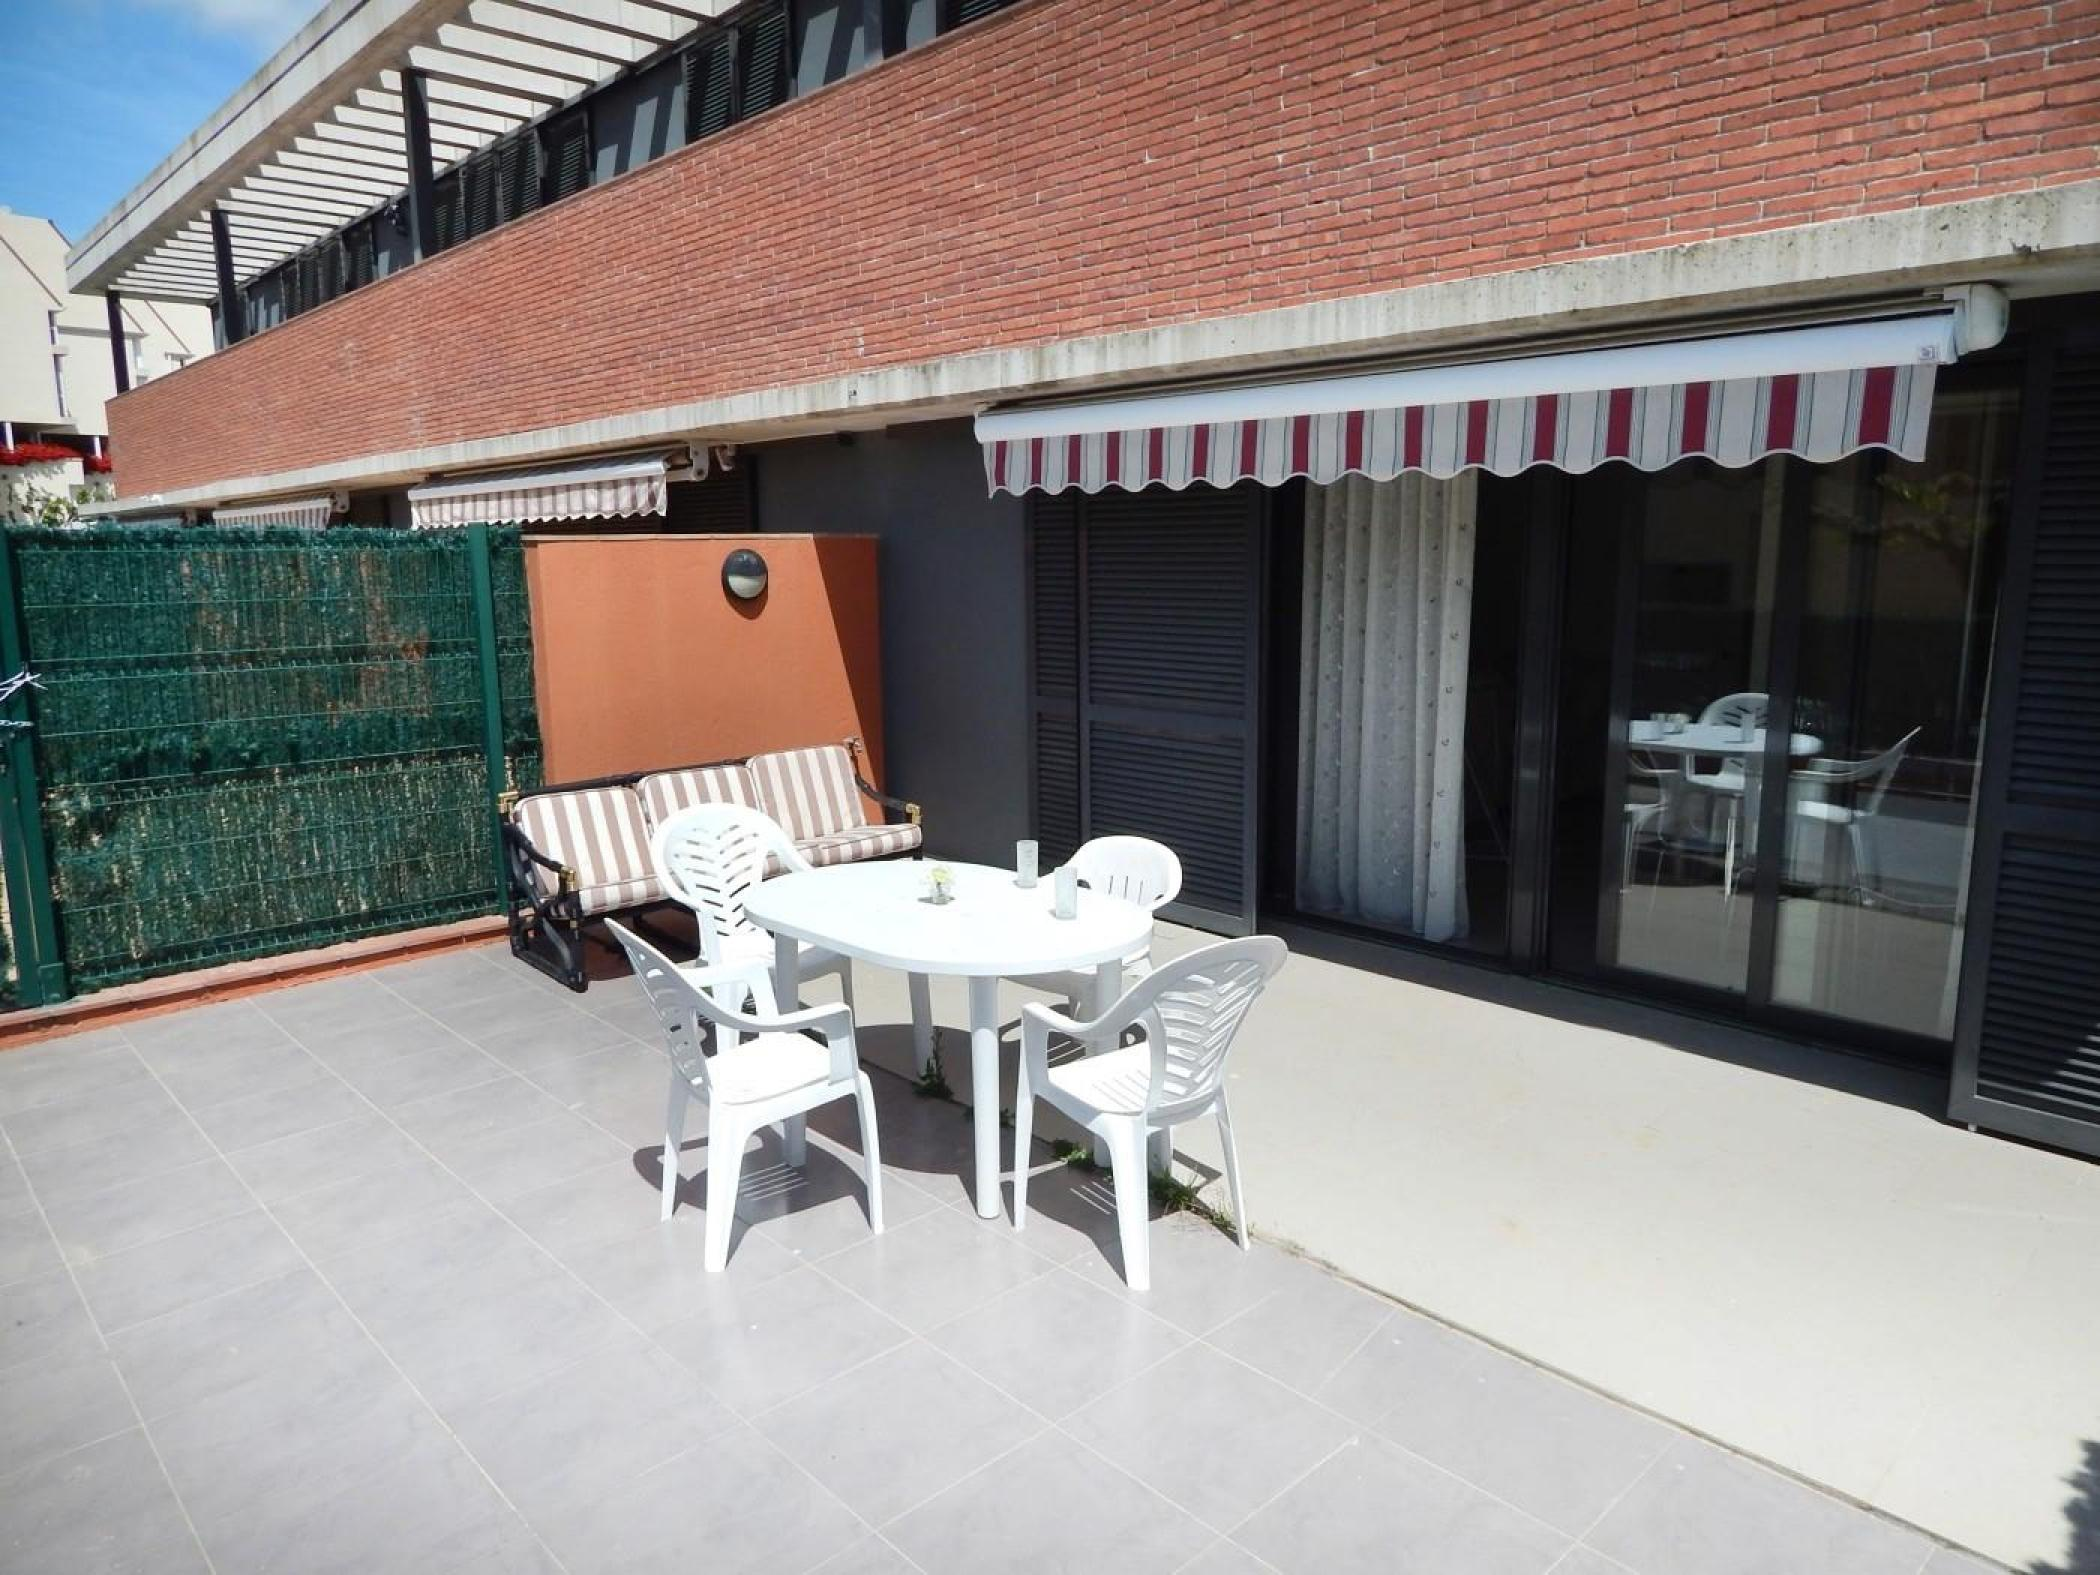 Lloguer Apartament a Platja d'Aro - Ground floor in front of the sea Ridaura BX4 - 2